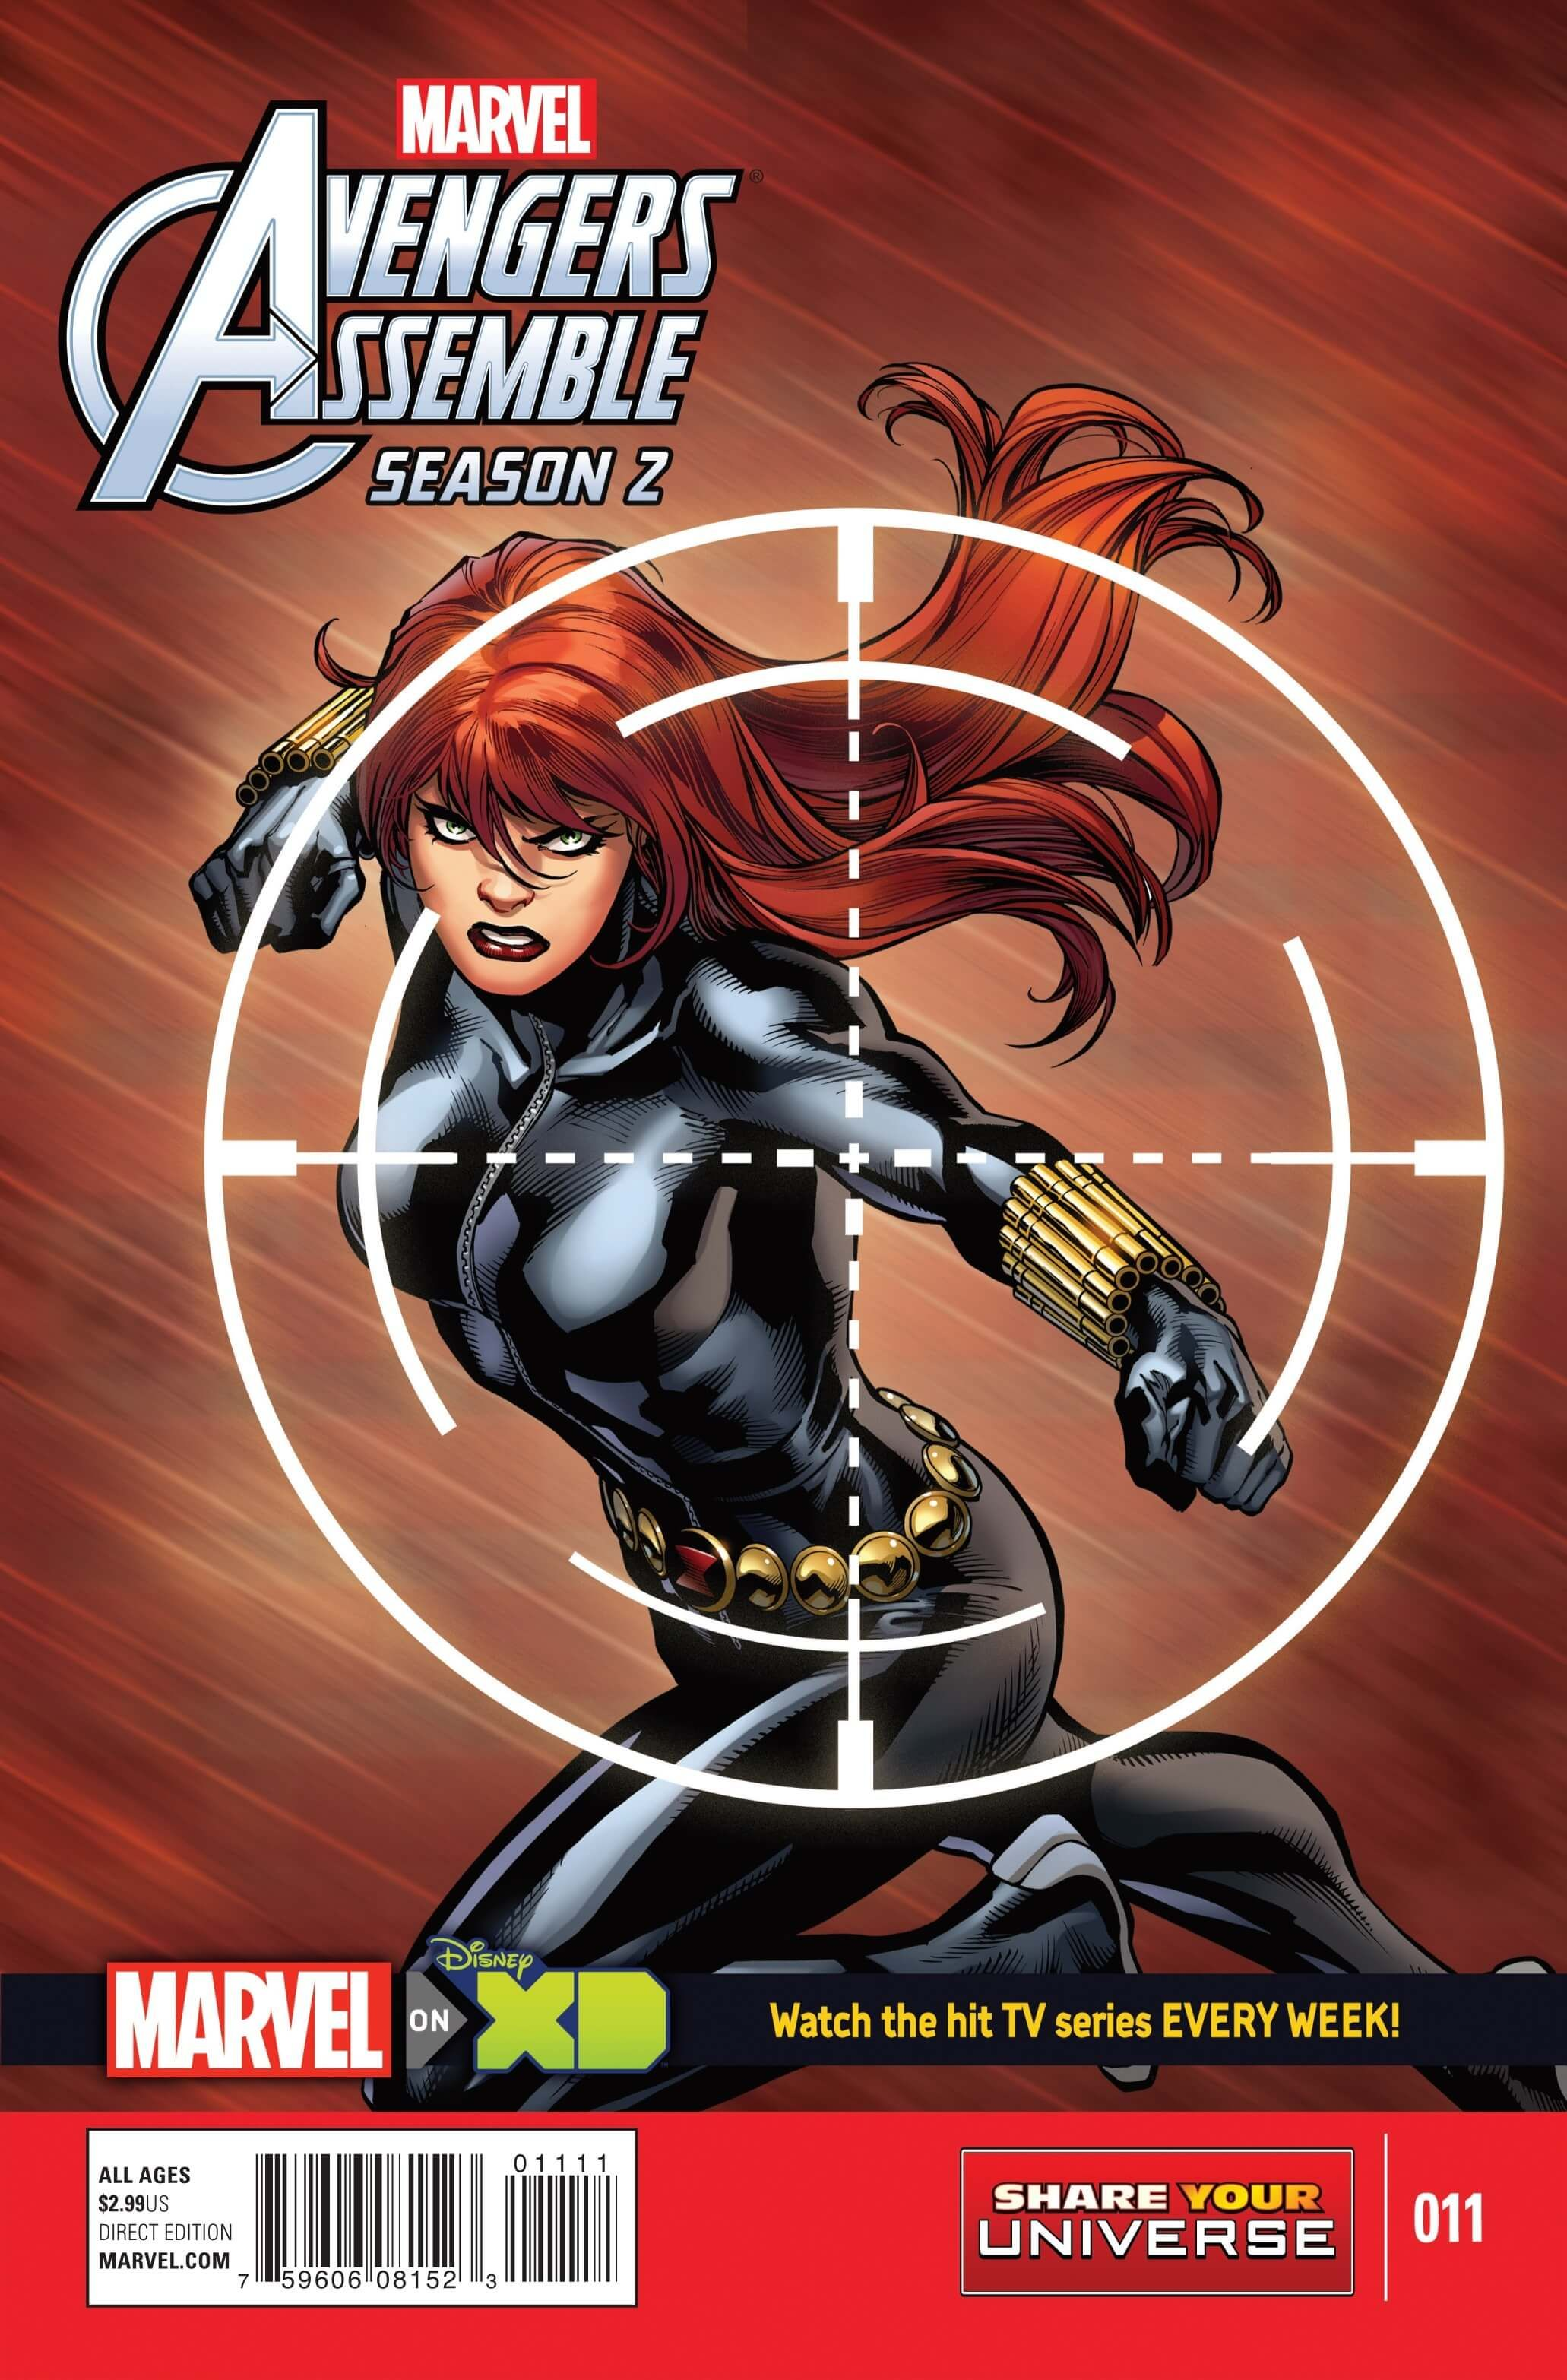 Preview: Marvel Universe: Avengers Assemble, Season Two #11, Marvel Universe: Avengers Assemble, Season Two #11 Adapted by: Joe Caramagna Publisher: Marvel Publication Date: September 9th, 2015 Price: $2..., #All-Comic #All-ComicPreviews #Comics #Marvel #MarvelUniverseAvengersAssemble #previews #SeasonTwo